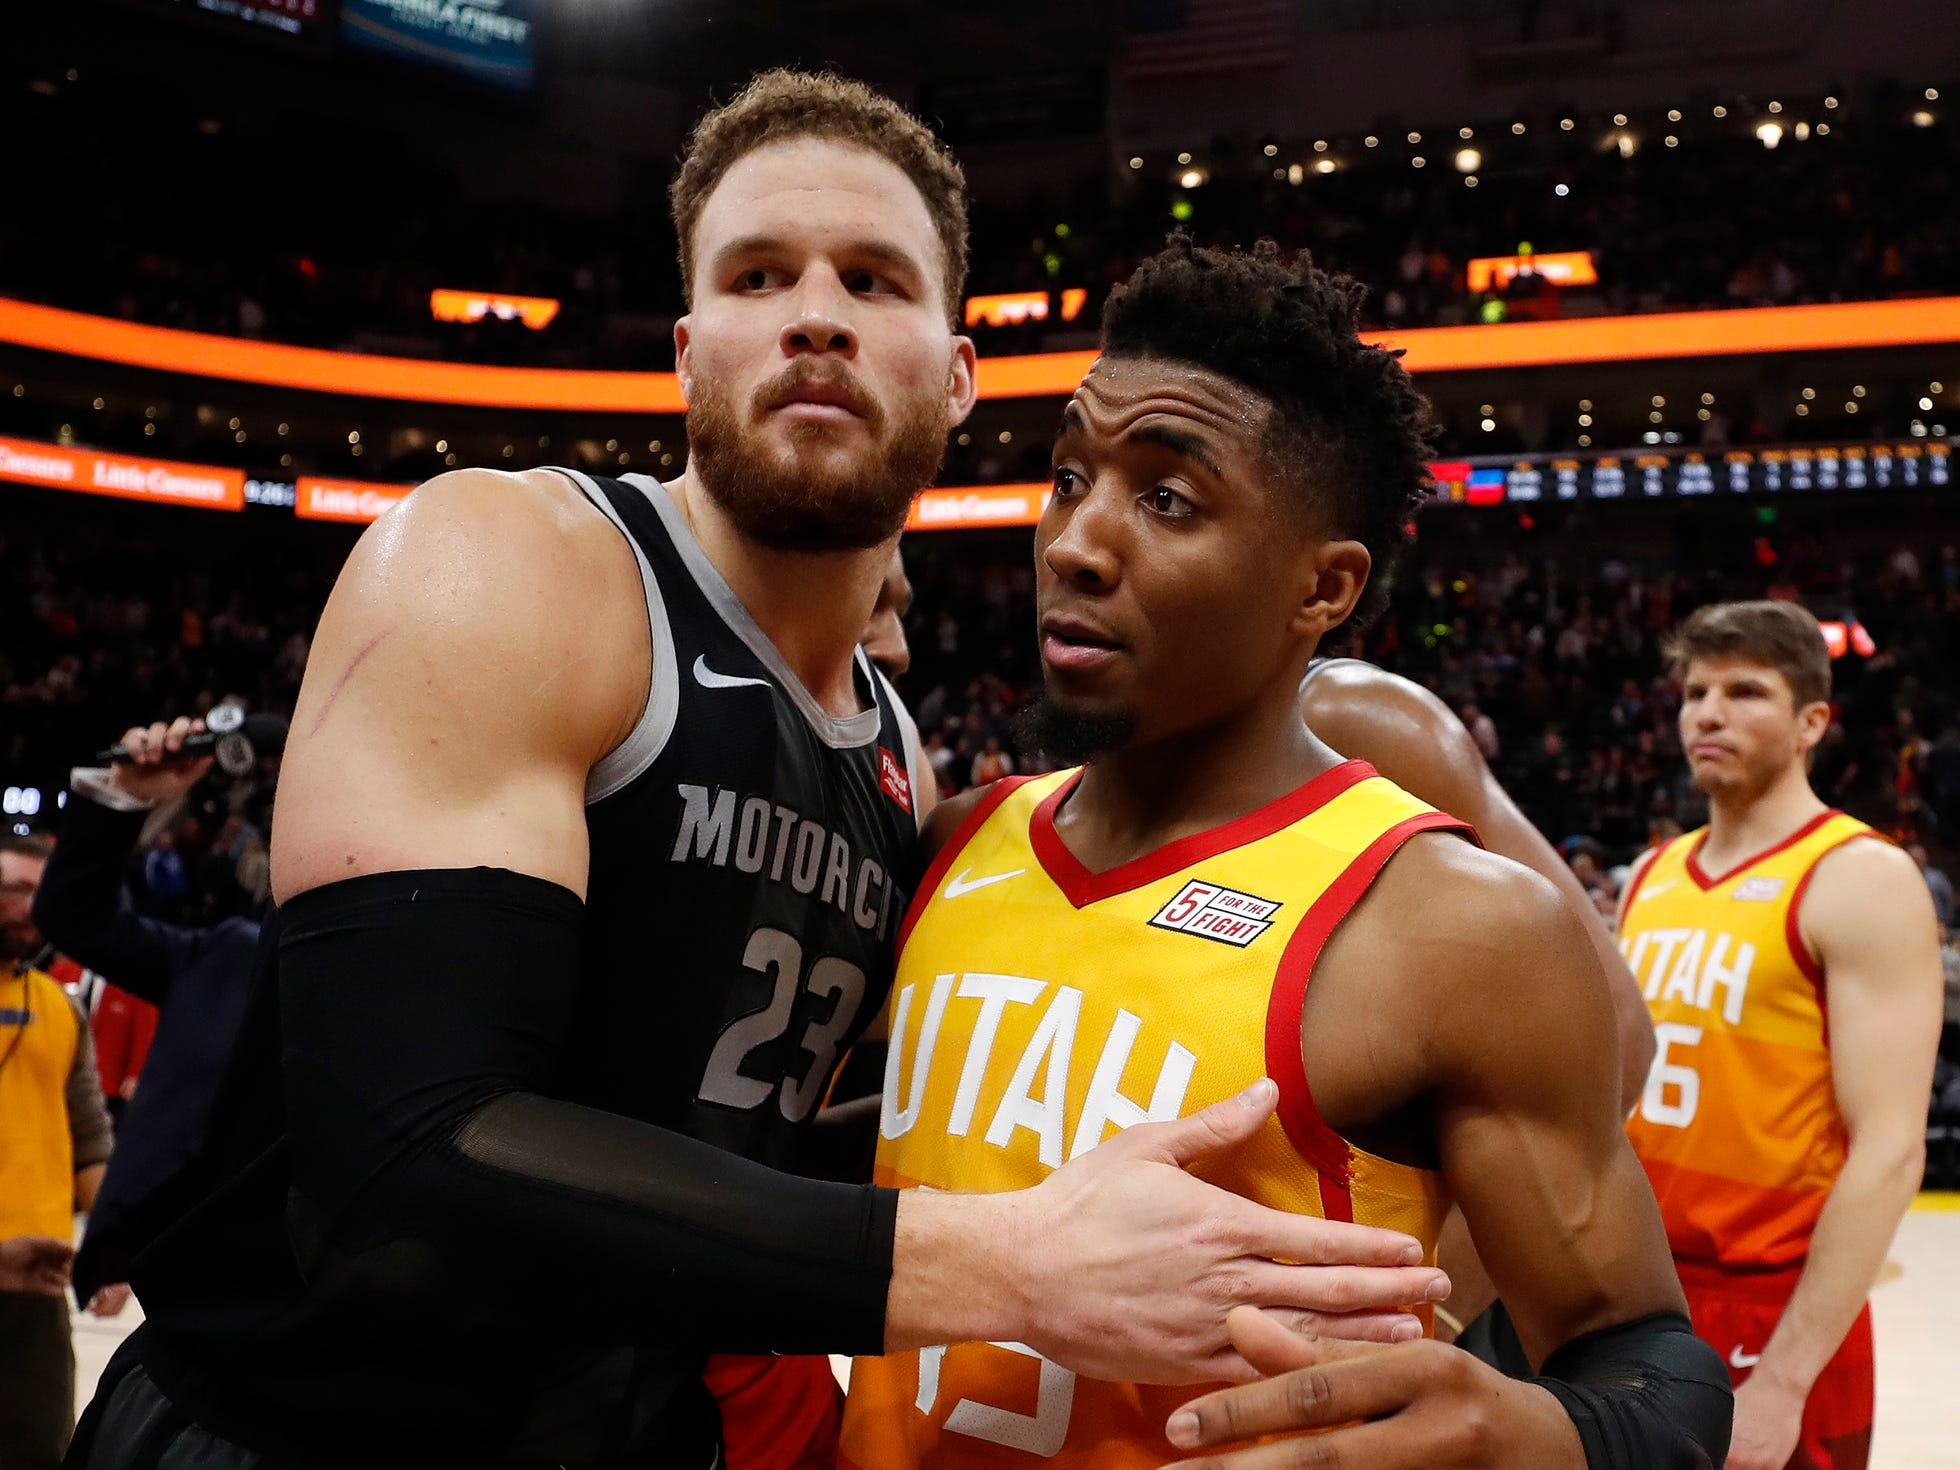 Pistons forward Blake Griffin and Utah Jazz guard Donovan Mitchell get together after the Pistons' 100-94 loss to the Jazz on Monday, Jan. 14, 2019, in Salt Lake City.